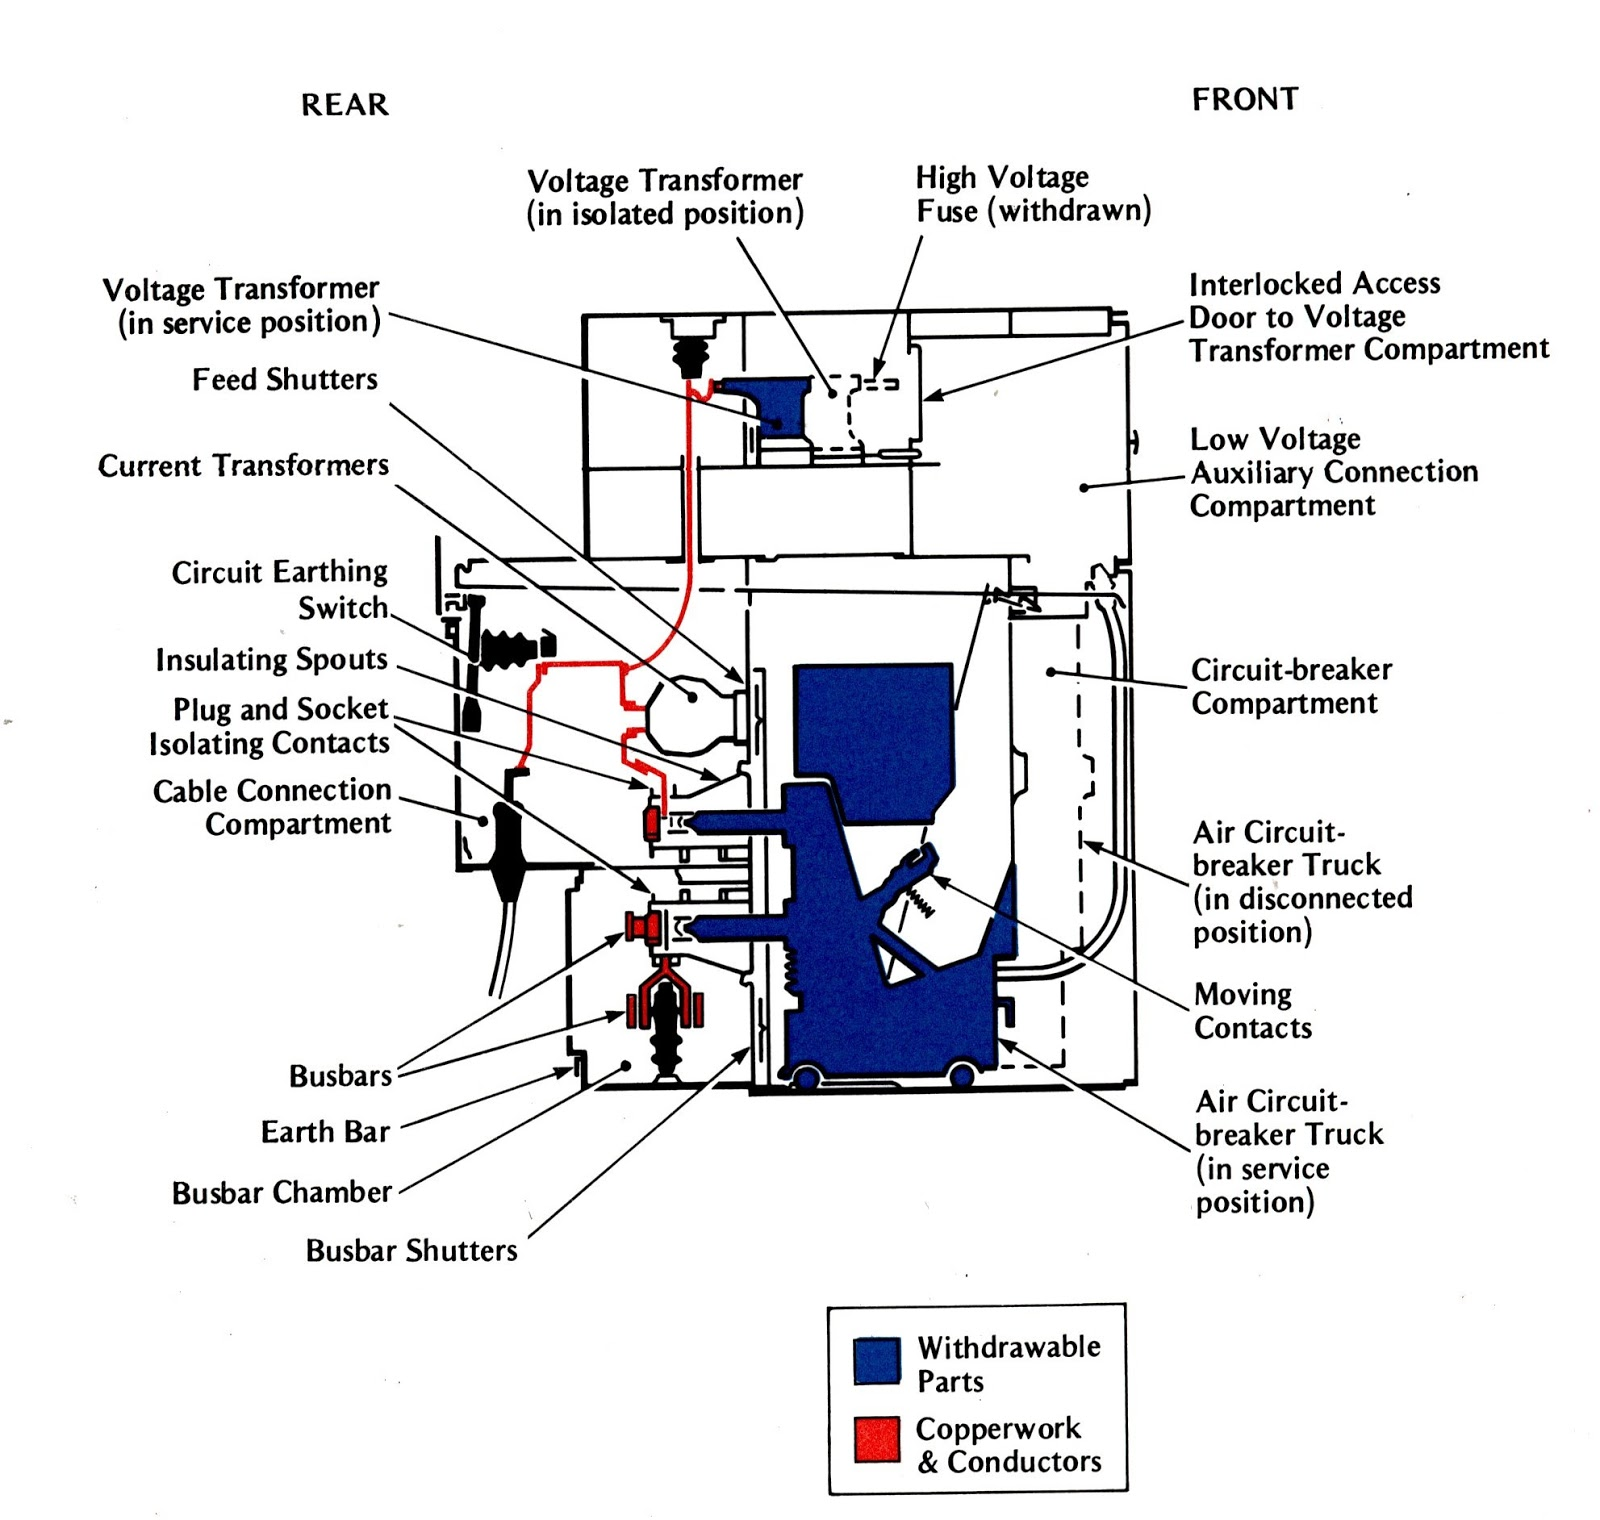 Engineering Photosvideos And Articels Search Engine Typical Breaker Panel Wiring Diagram At The Rear Of Are Two Further Compartments Each With A Bolted Cover Lower Compartment Houses Busbars Upper Feeder Cable